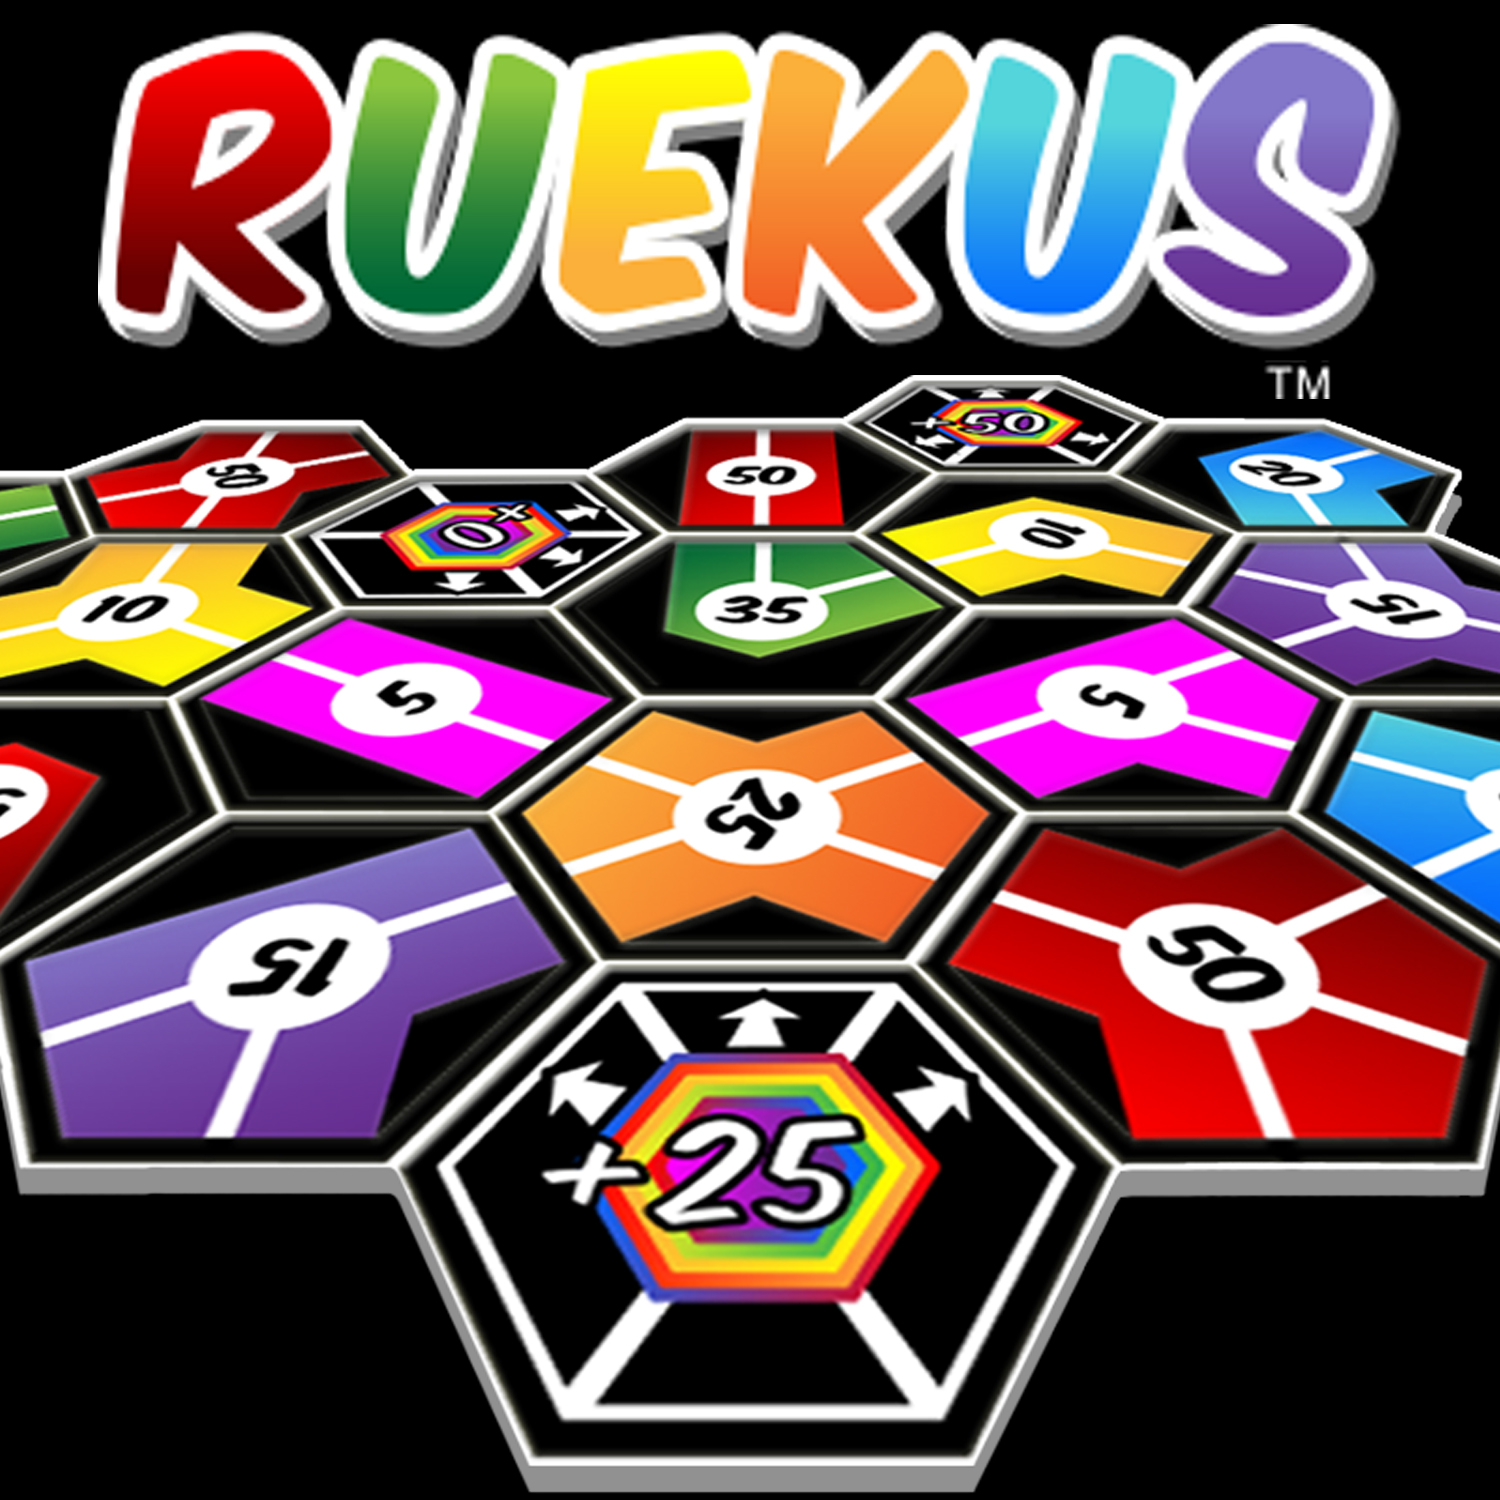 My+Game+Page+Ruekus.jpg